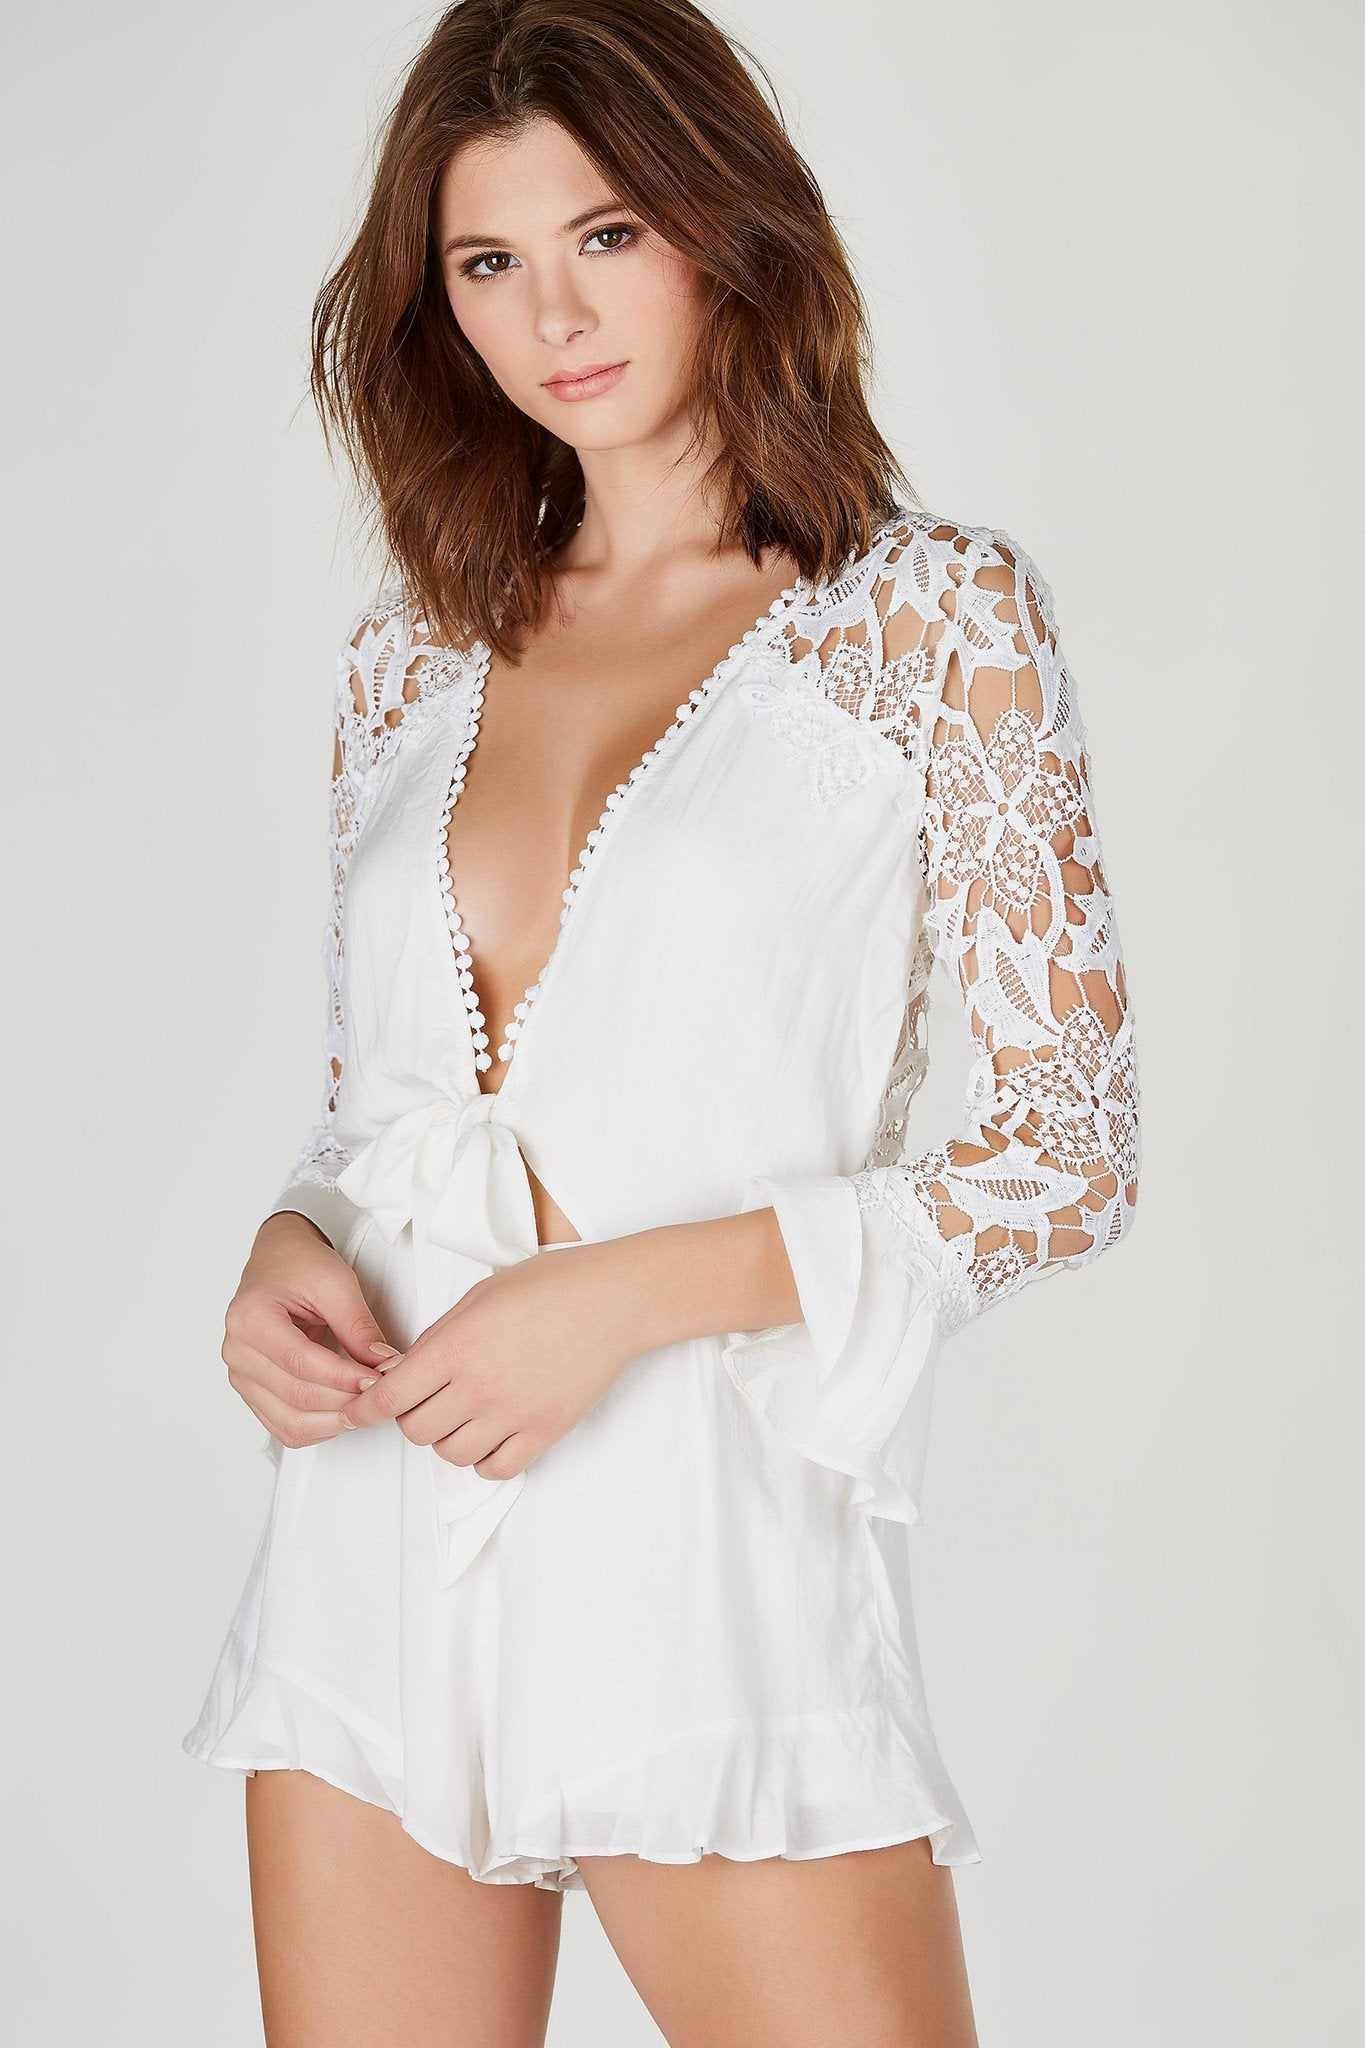 This beautiful romper will definitely have all eyes on you no matter where you are! Gorgeous crochet detailing for a revamped, peek-a-boo effect. Open front with a chic tie for closure. Ruffled hem and lining at bottom for an extra feminine touch. Layer a bralette underneath and pair with your favorite pumps!